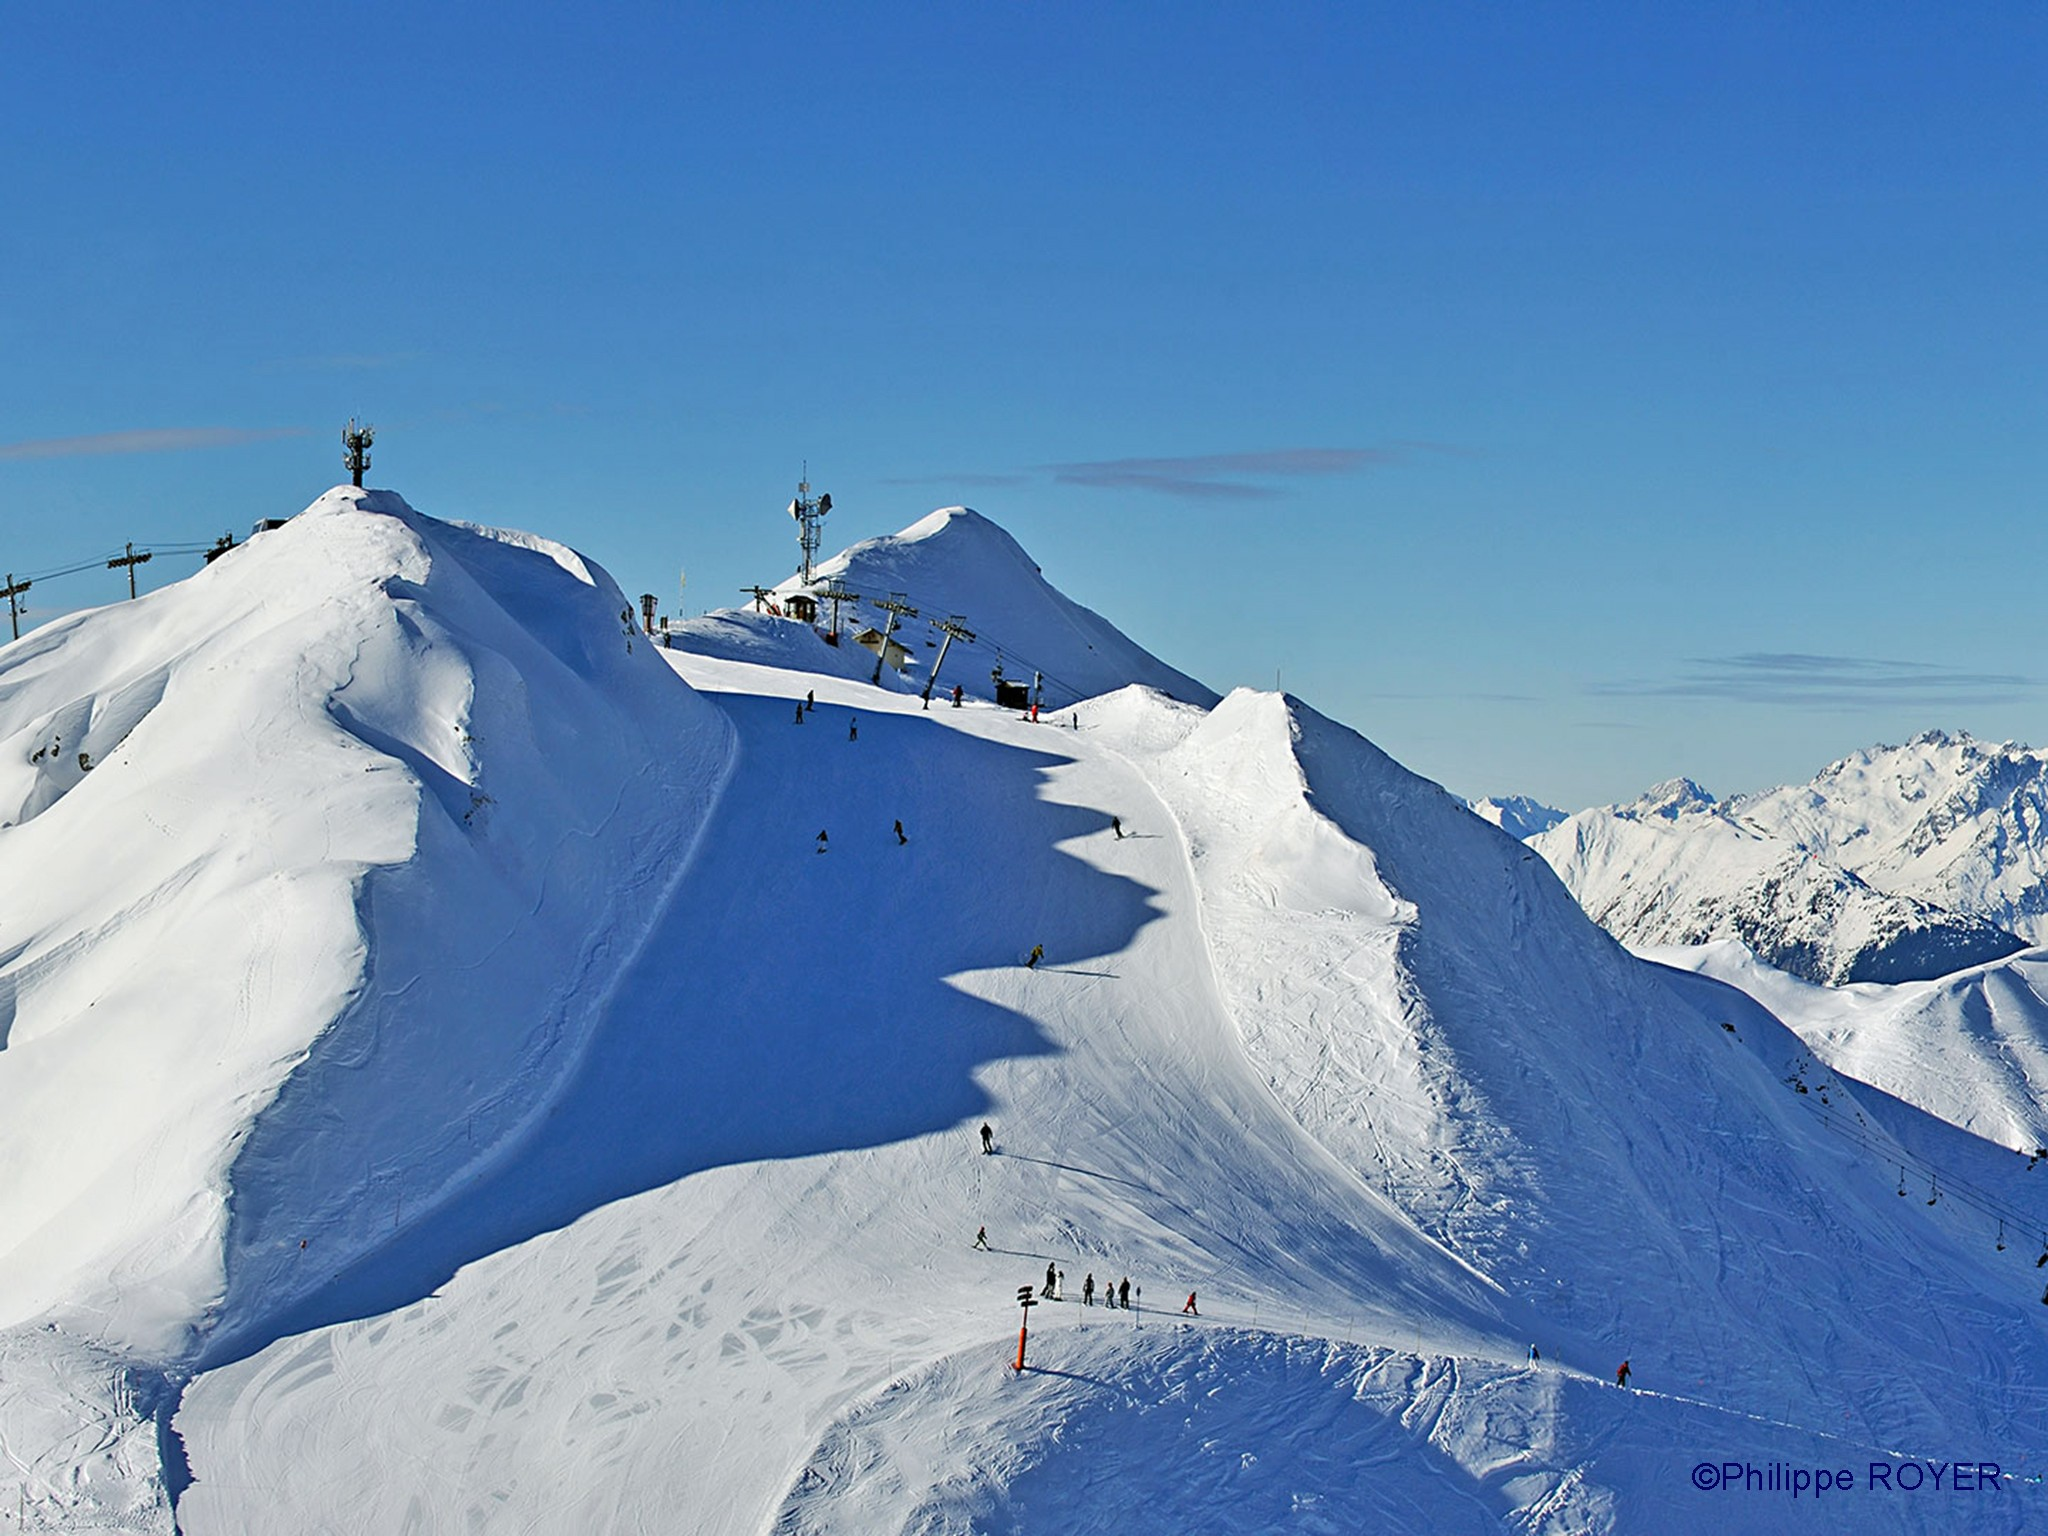 ski area ®Philippe Royer